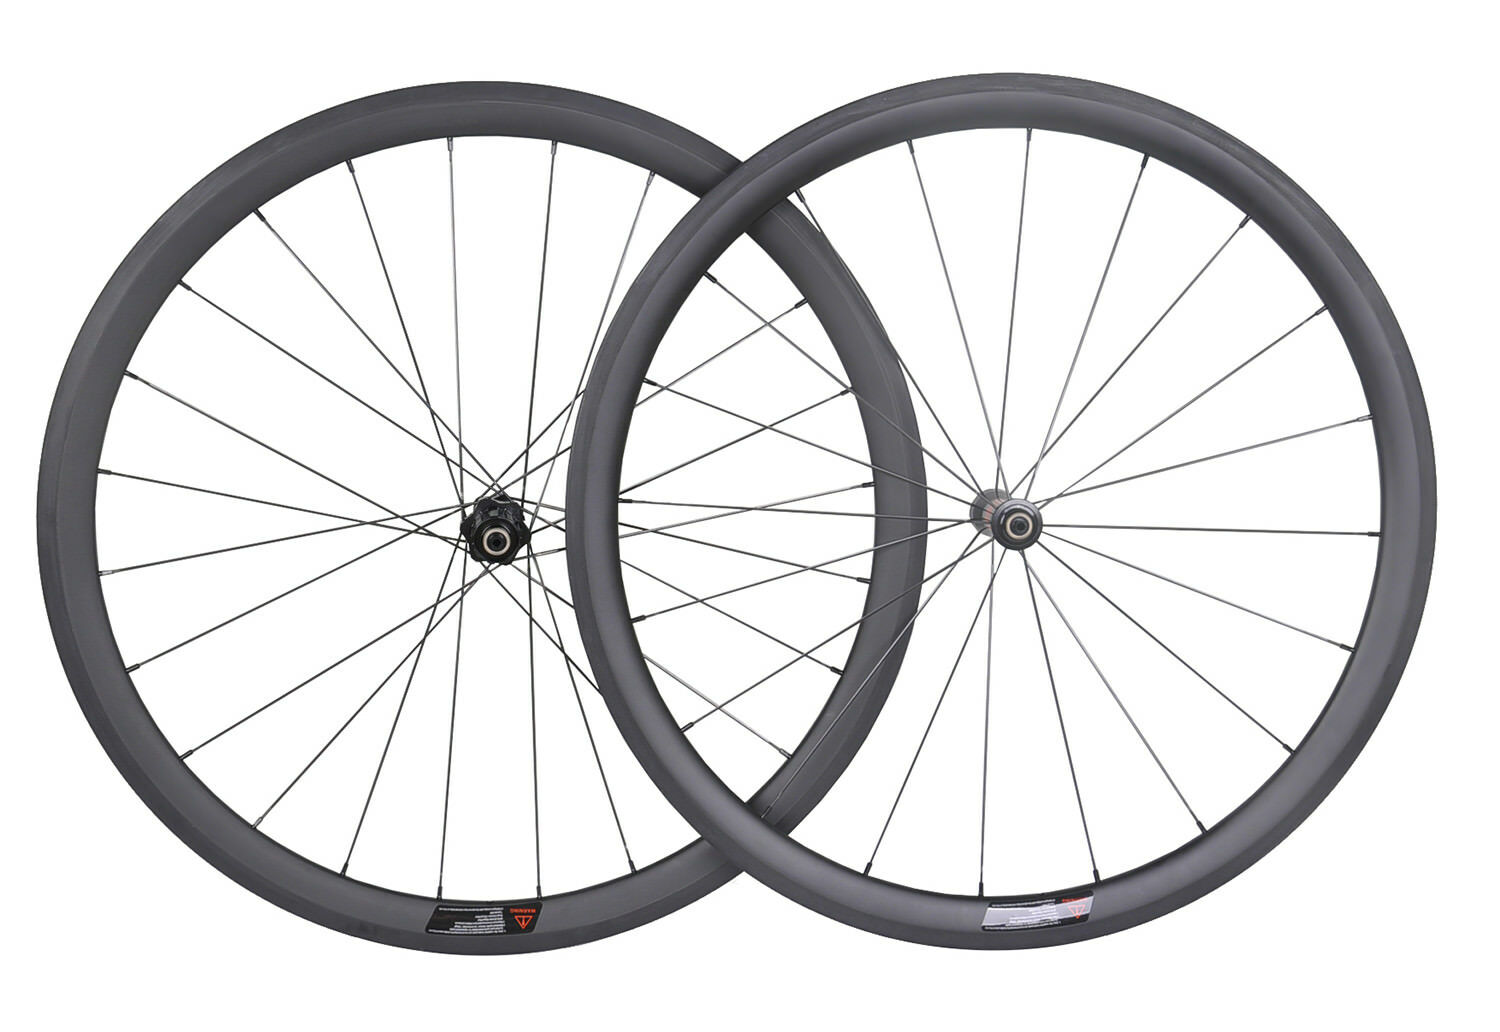 DT Swiss 240s 38mm Sapim Carbon Wheel Clincher Road Bike 700C UD Matt Rim 25mm